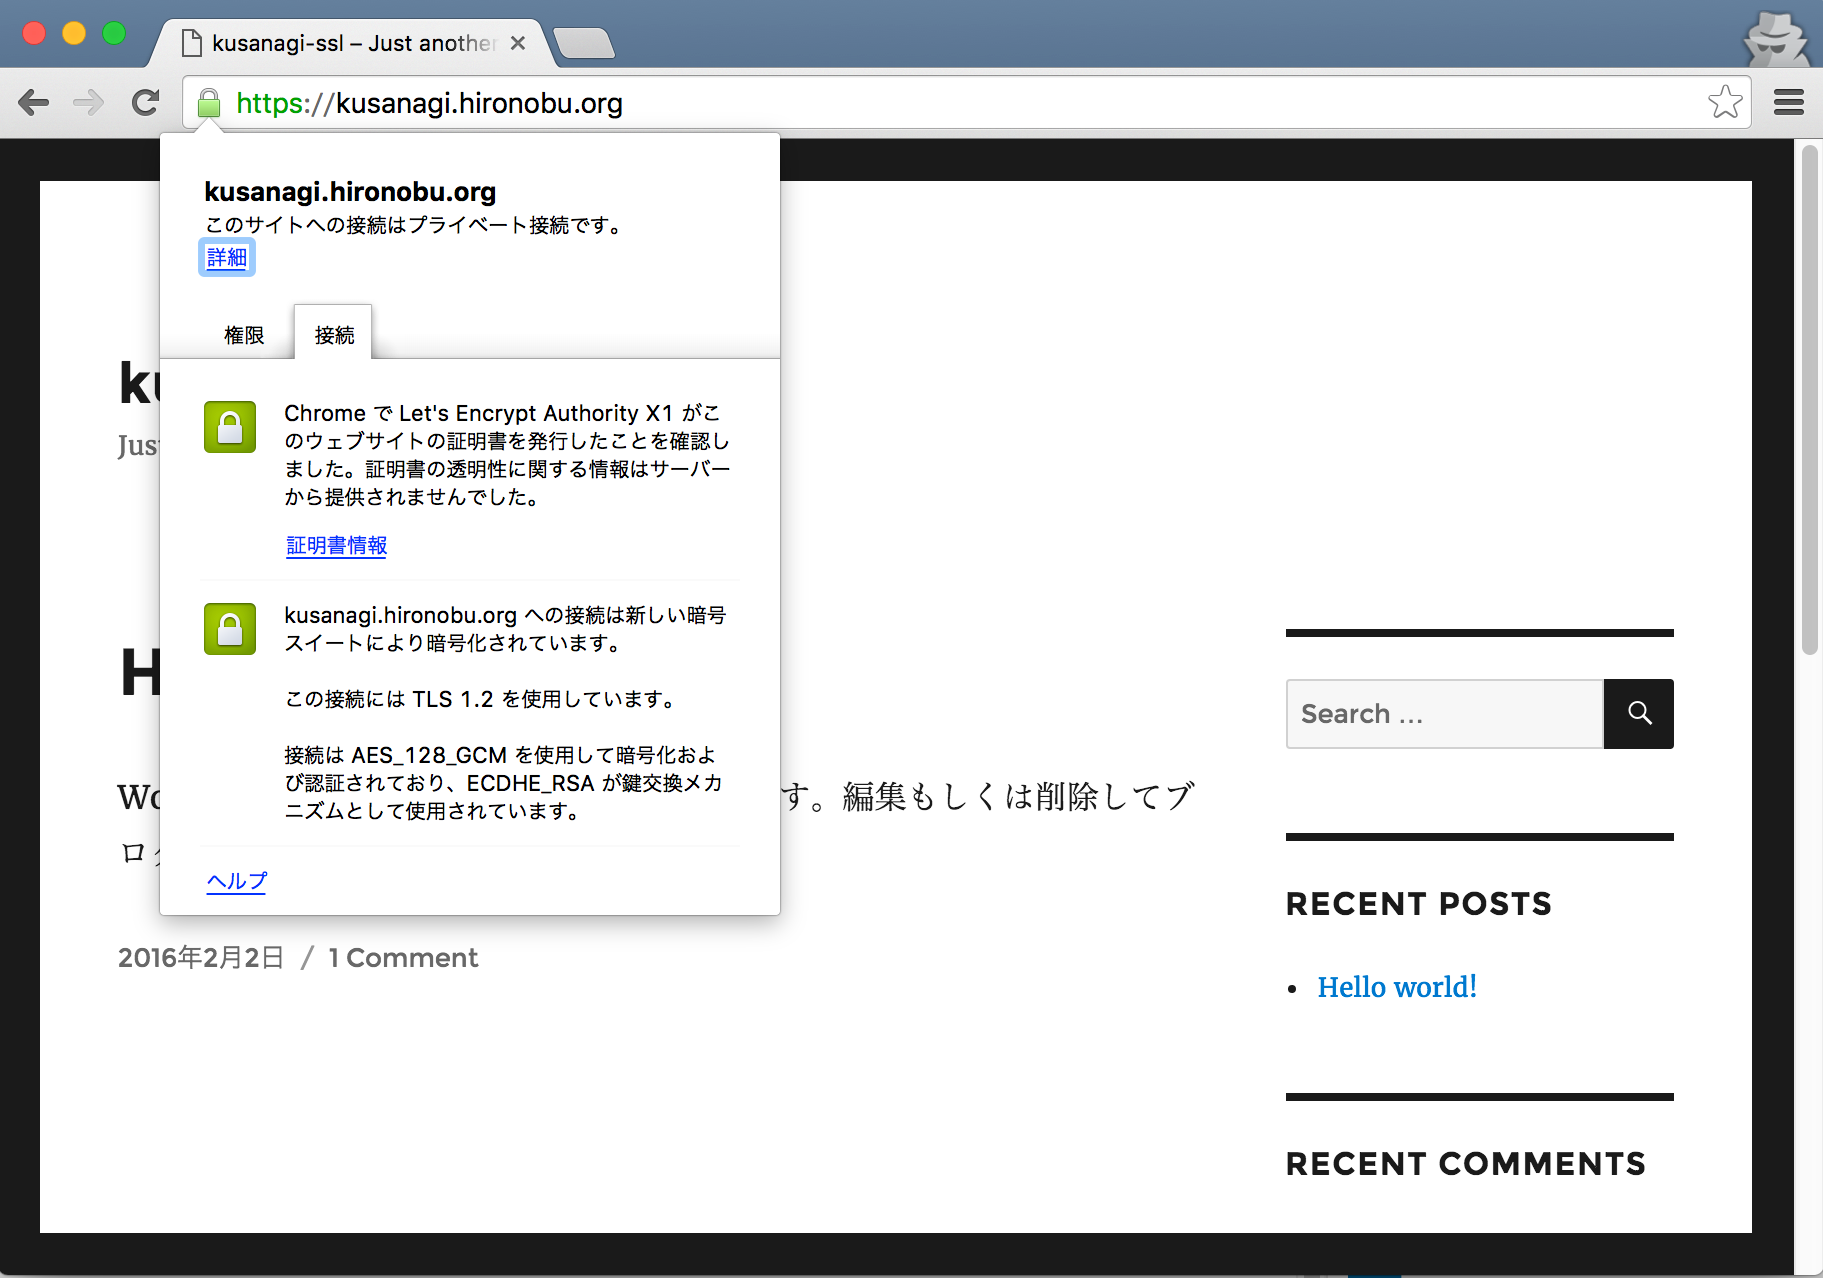 kusanagi-ssl_–_Just_another_WordPress_site_と_新規投稿_-_Qiita.png